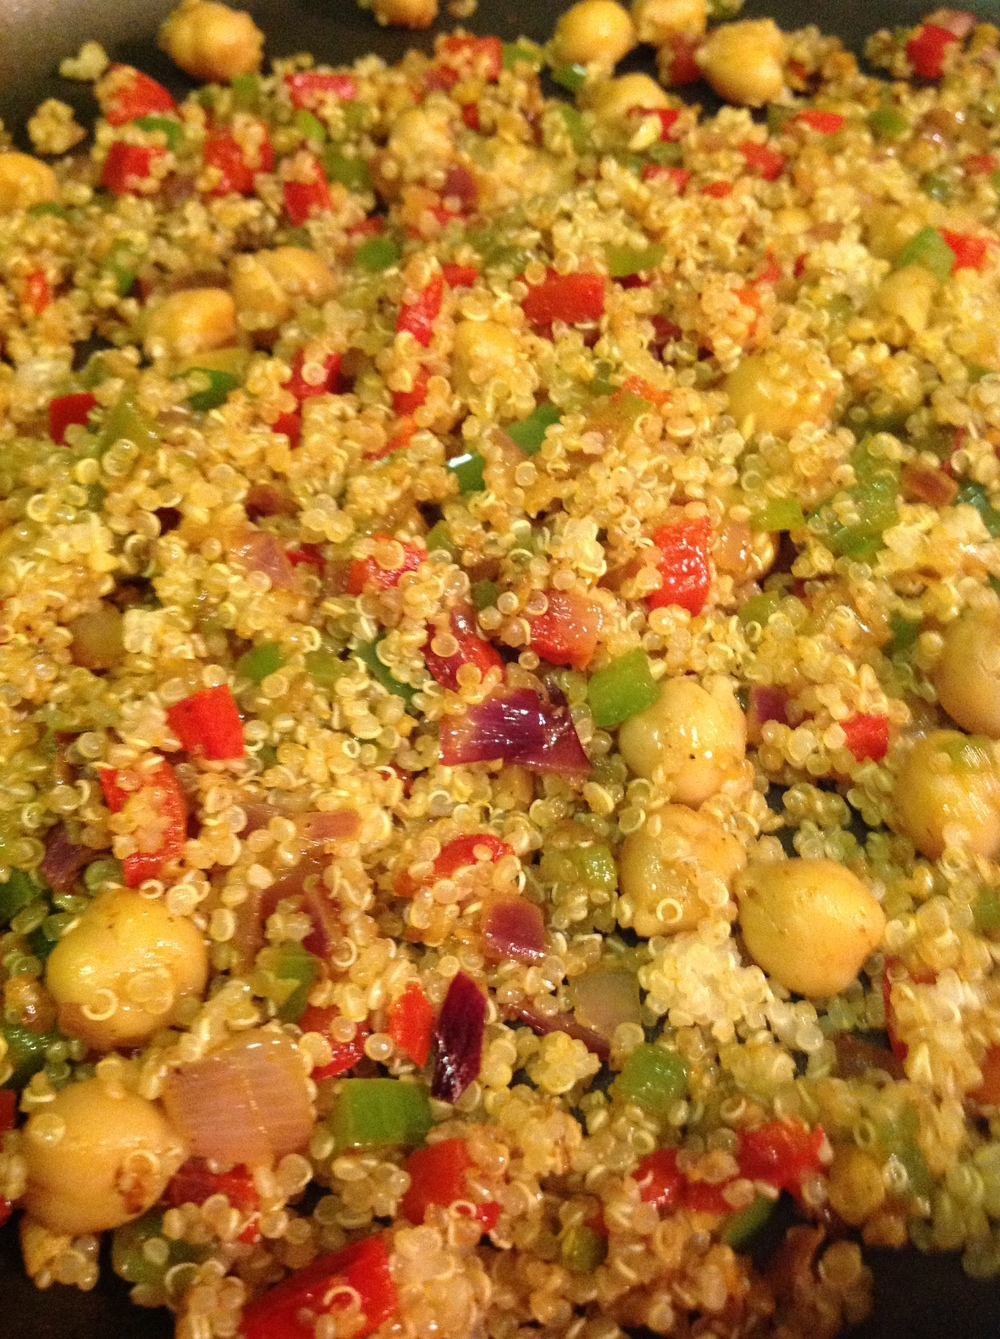 Spicy-Coconut-Curried-Quinoa2.jpg